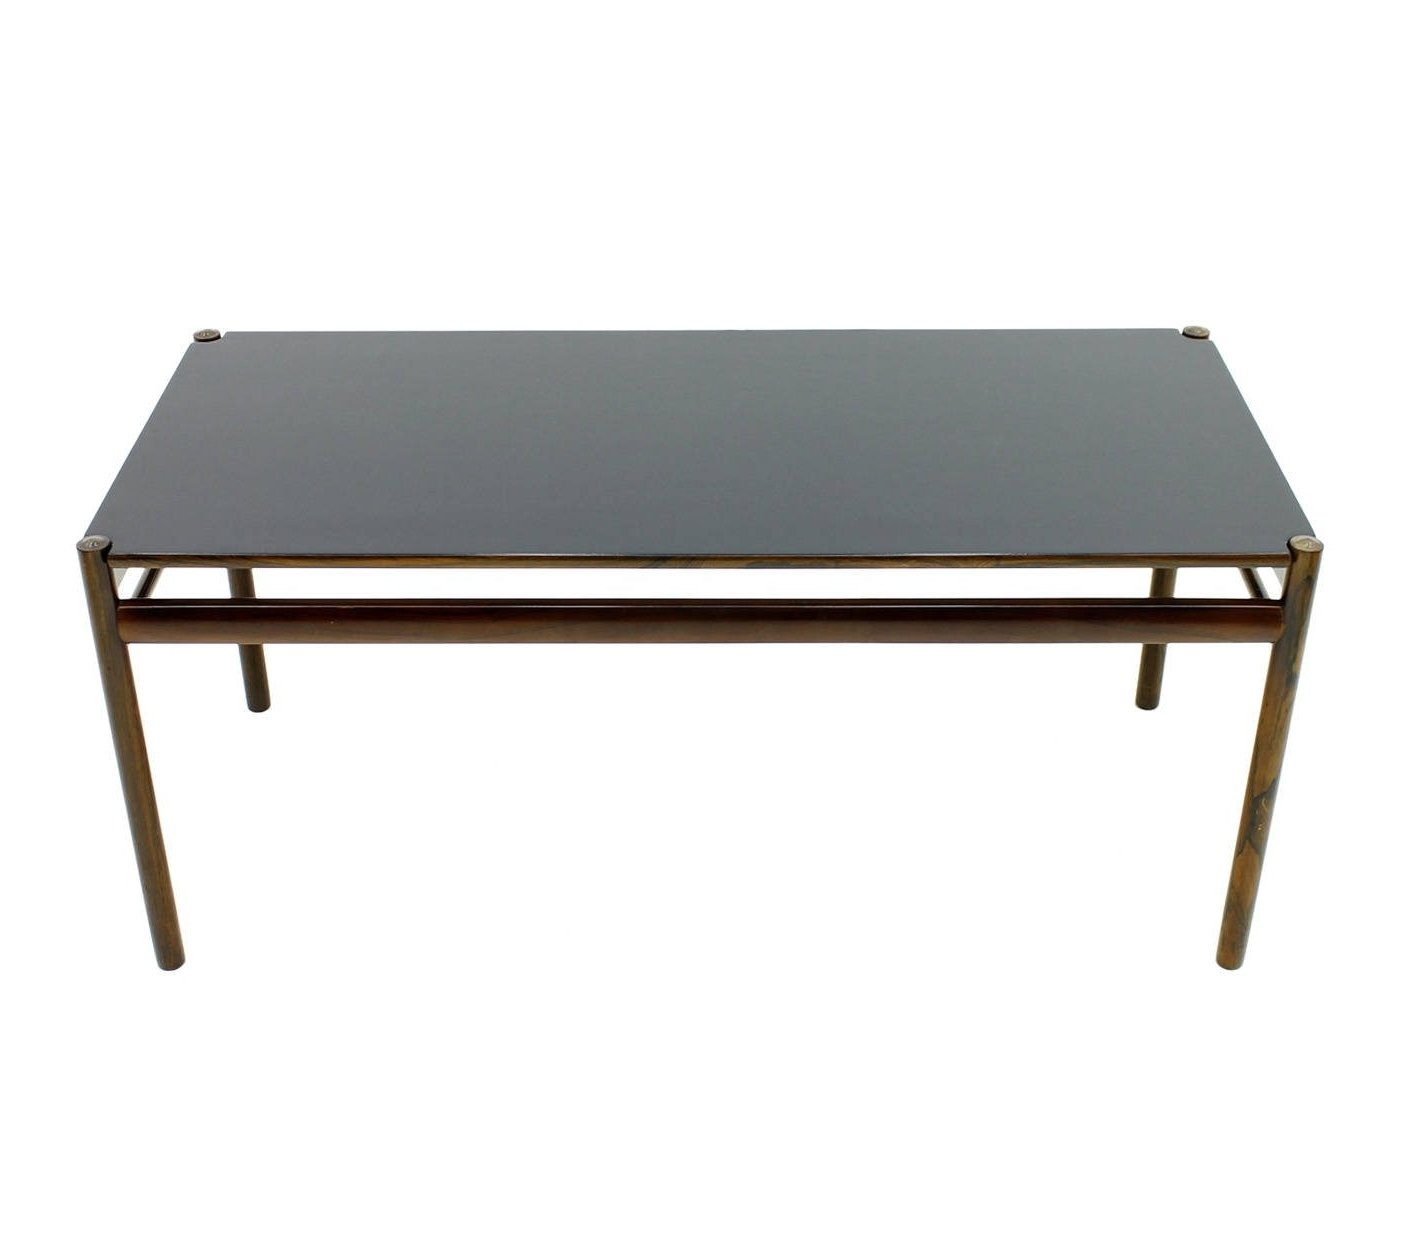 Flip Top Coffee Table By Ole Wanscher For P Jeppesen Mobelfabrik